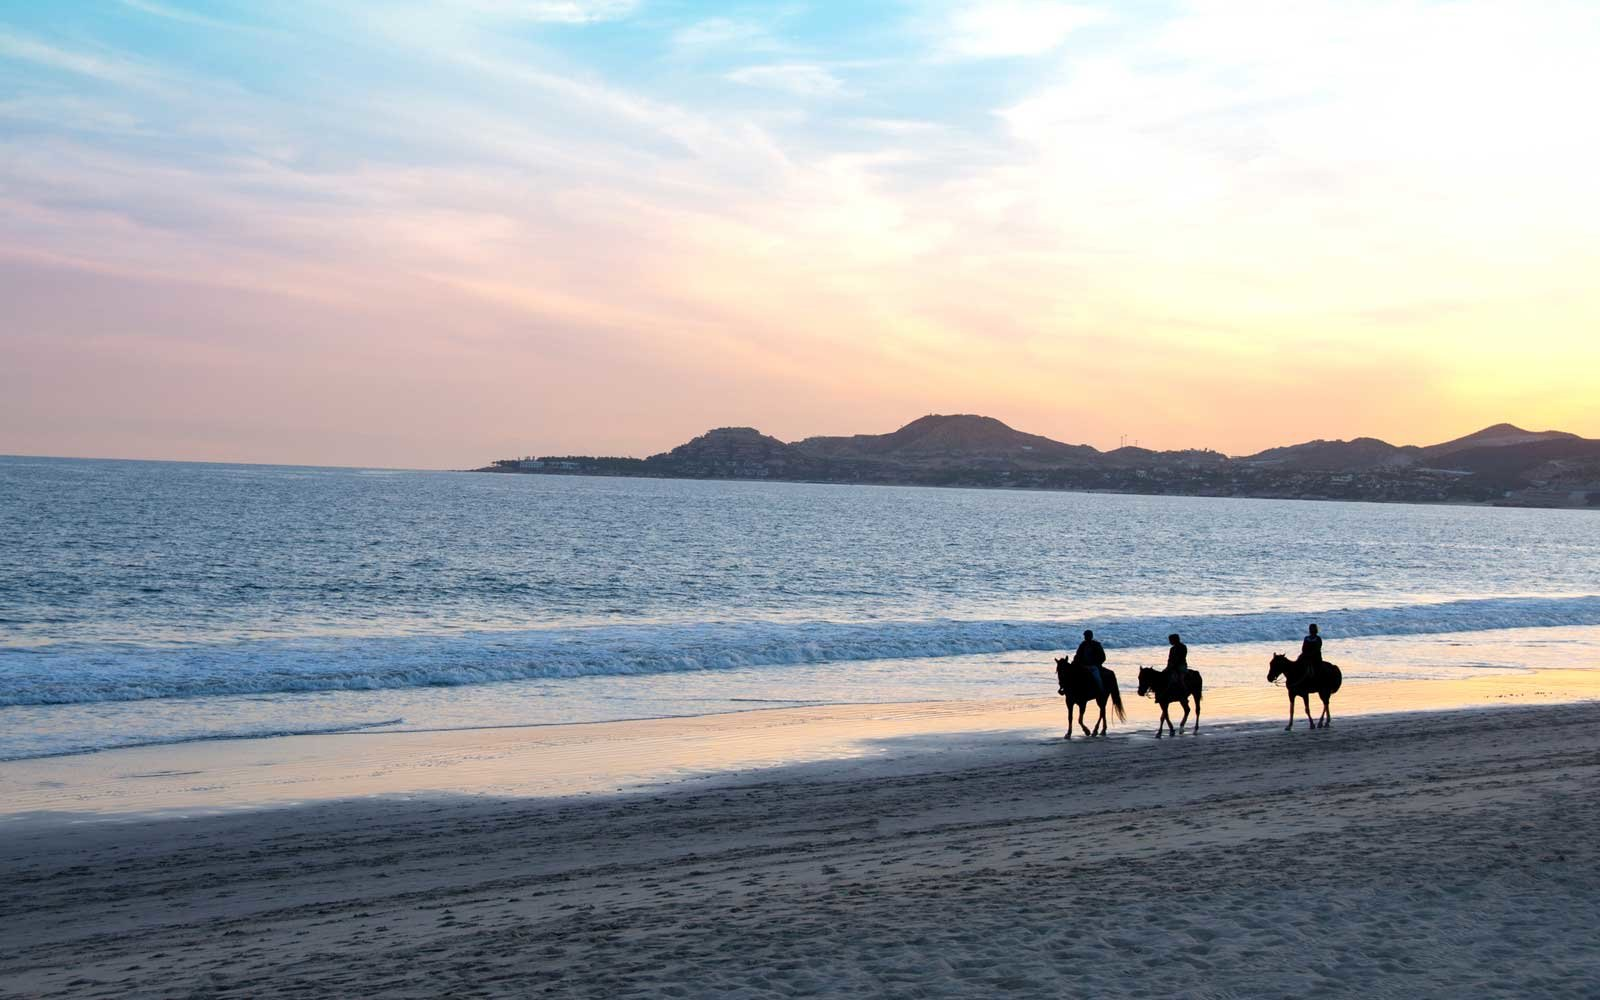 Cabo San Lucas sunset, with horseback riders